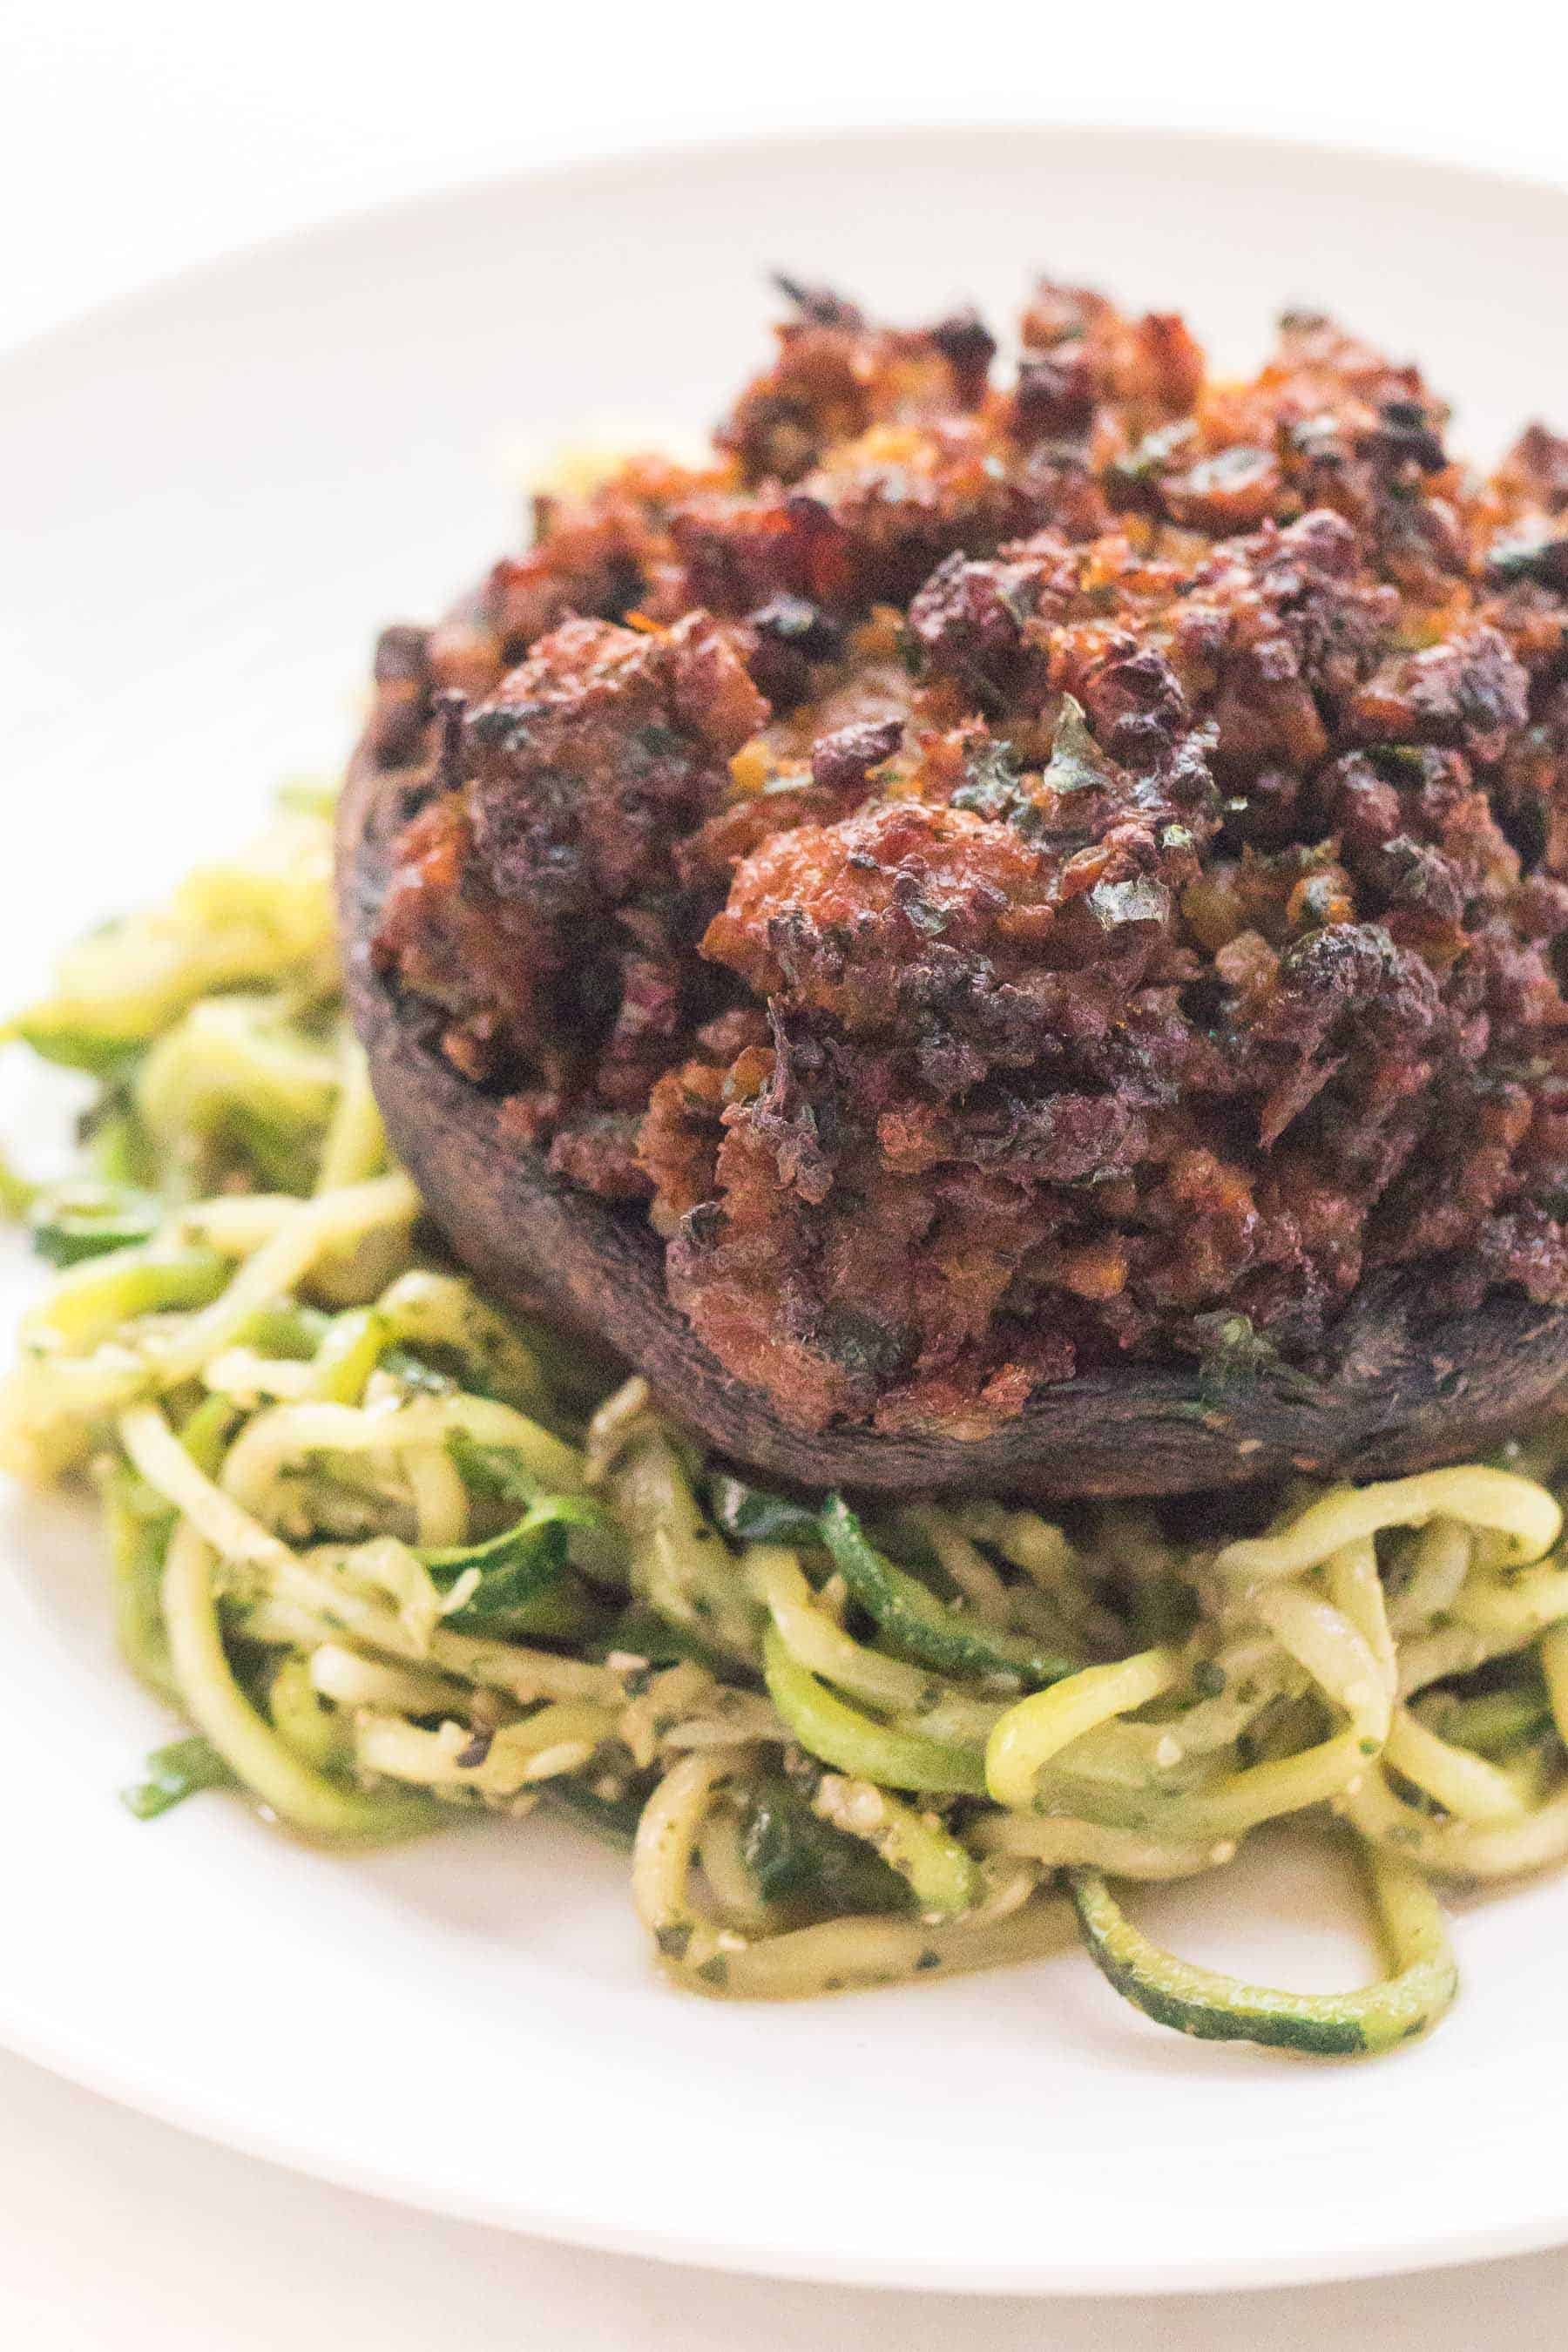 sausage stuffed portobello mushrooms over zucchini noodles